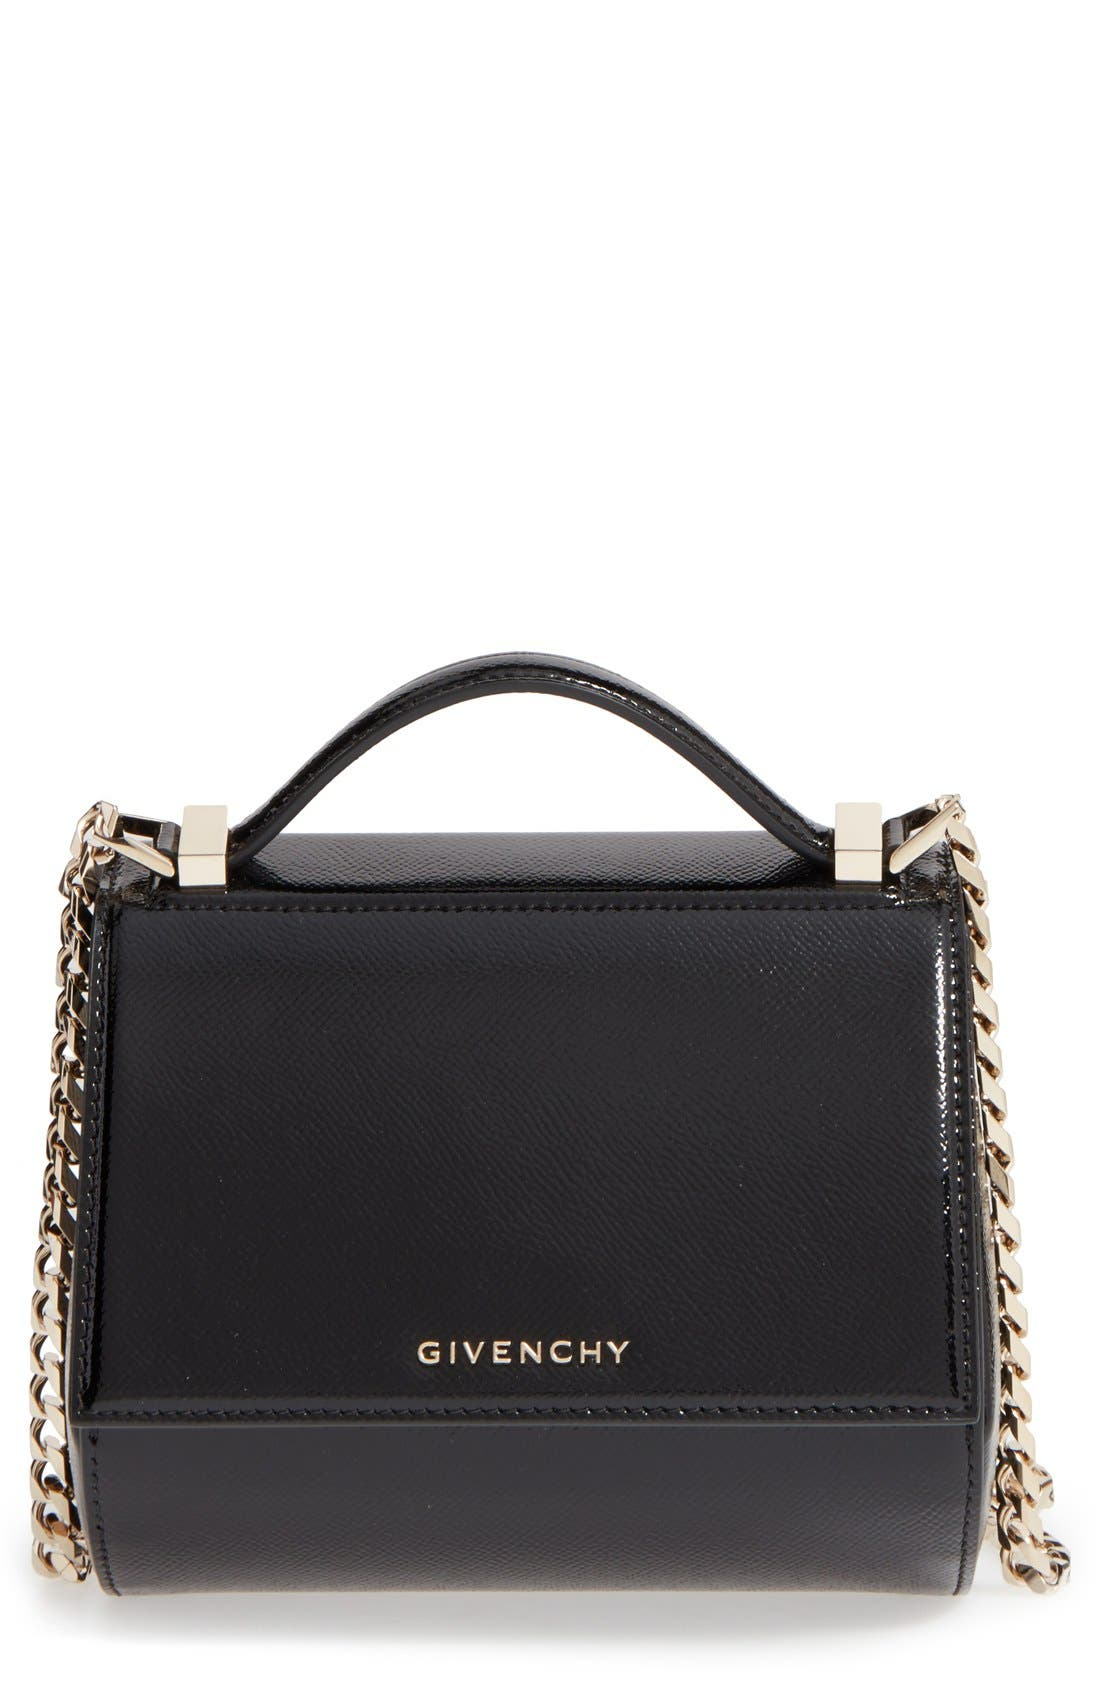 Alternate Image 1 Selected - Givenchy 'Mini Pandora Box' Leather Shoulder Bag